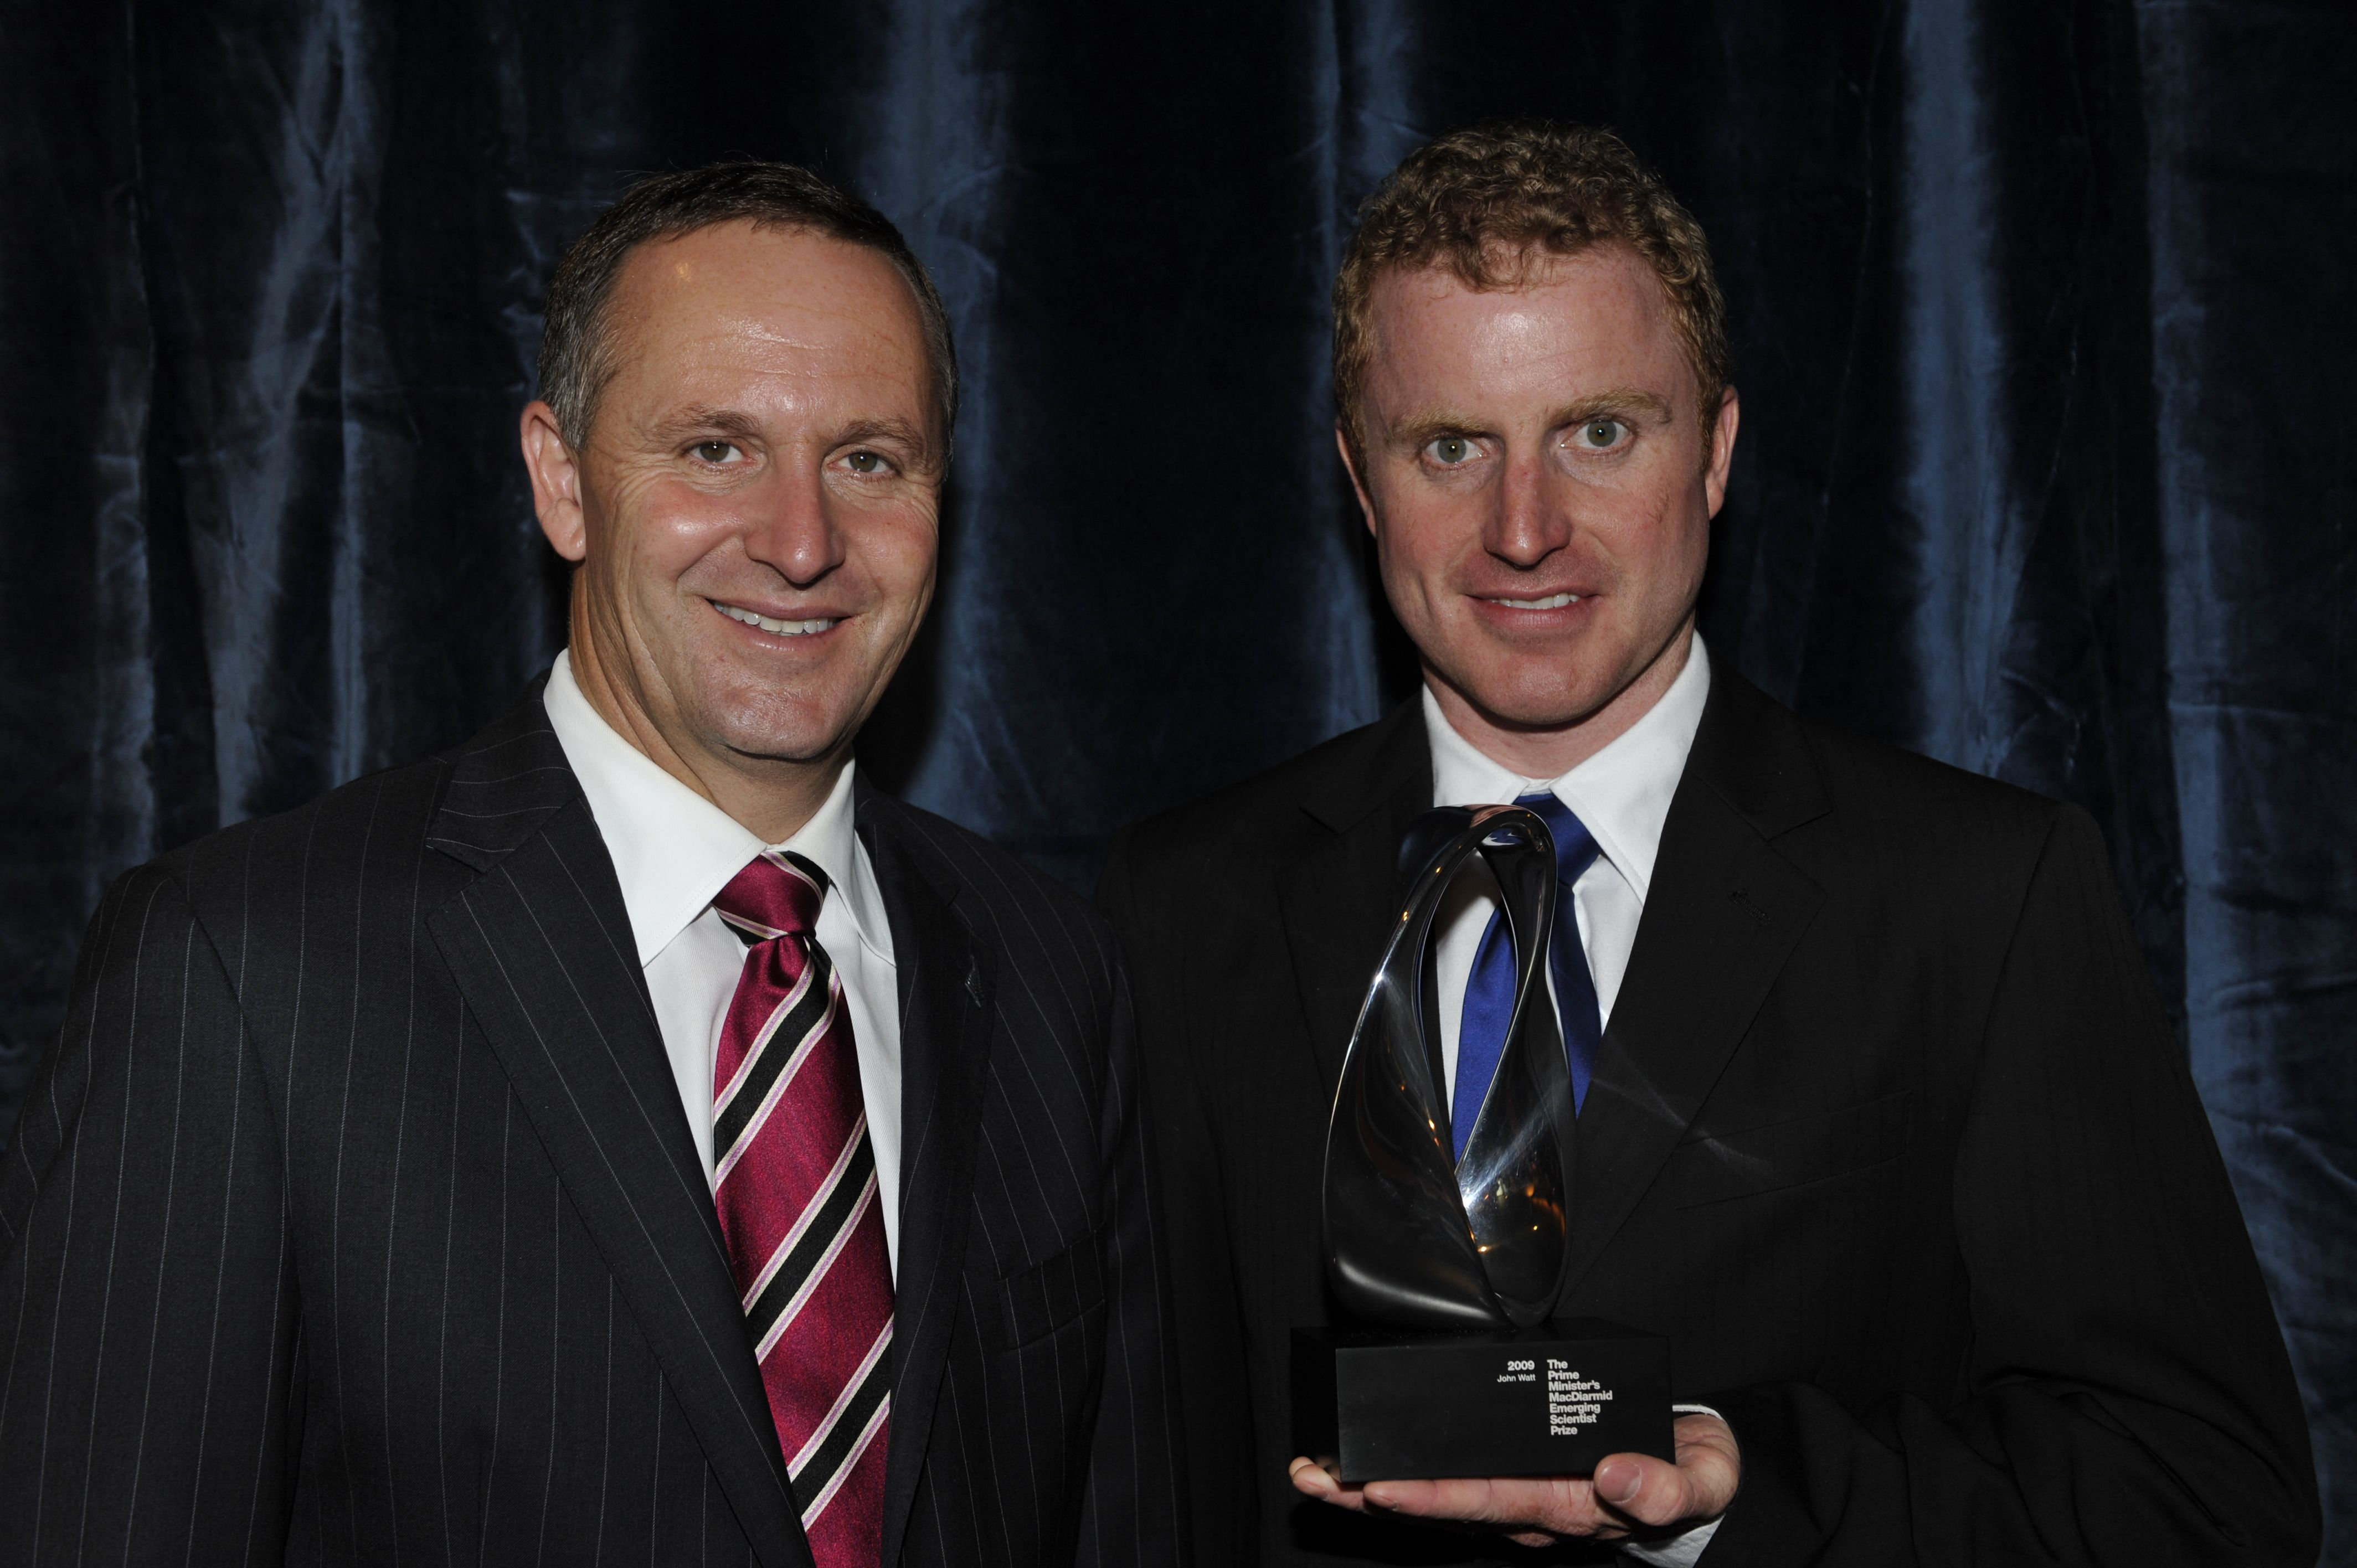 Image: Prime Minister's MacDiarmid Emerging Scientist Prize 2009